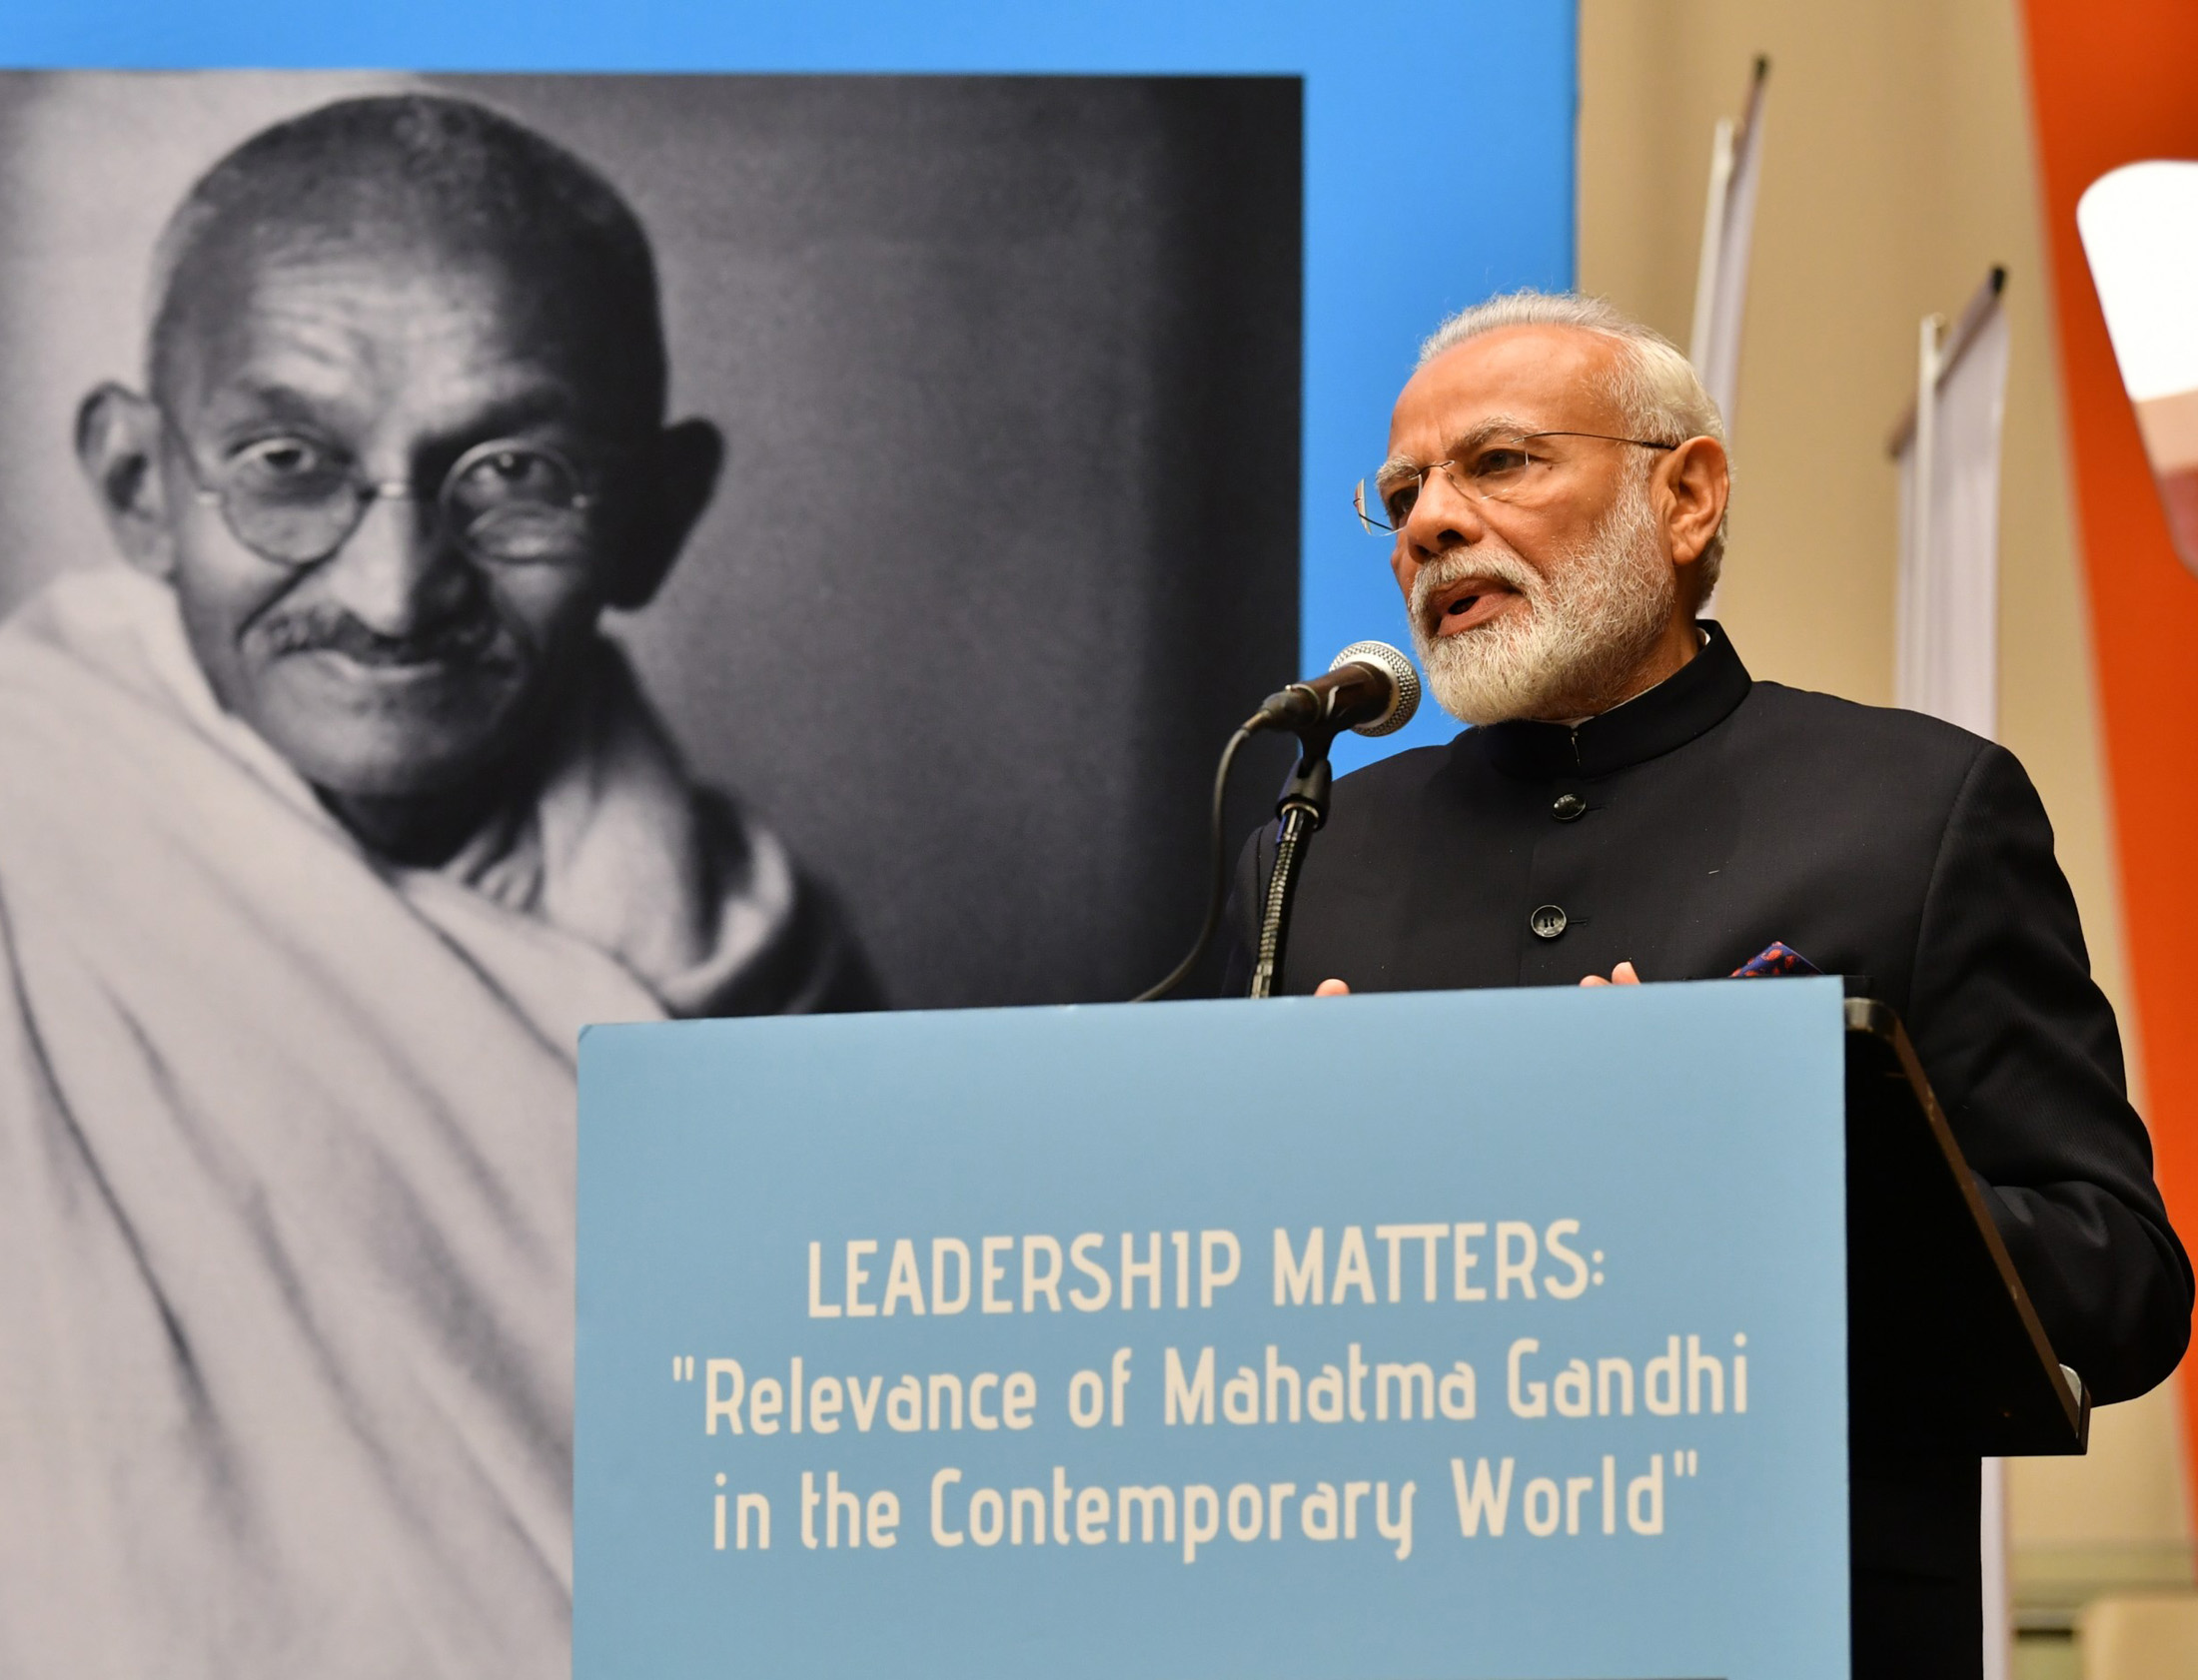 PM's speech at ECOSOC Chambers on relevance of Mahatma Gandhi in today's era PM's speech at ECOSOC Chambers on relevance of Mahatma Gandhi in today's era